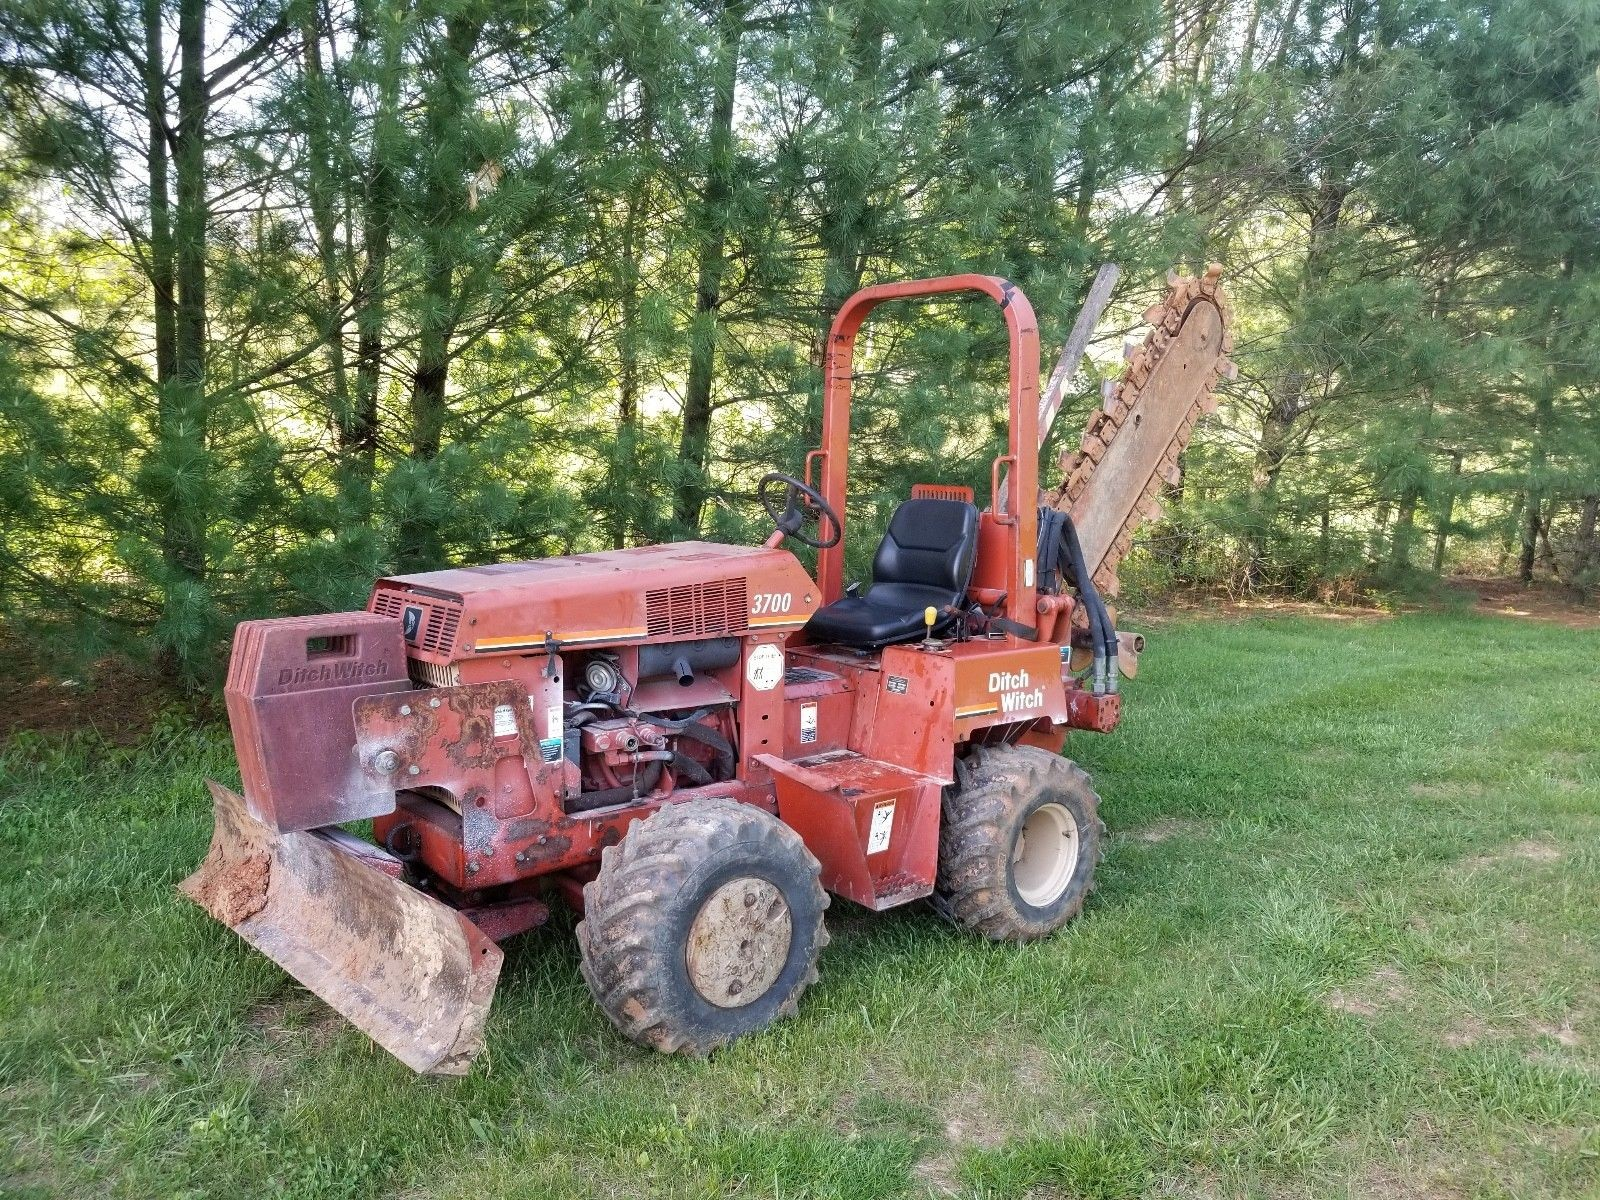 Ditch Witch Parts Diagram Ditch Witch 3700dd Trencher Diesel $8 450 00 Of Ditch Witch Parts Diagram